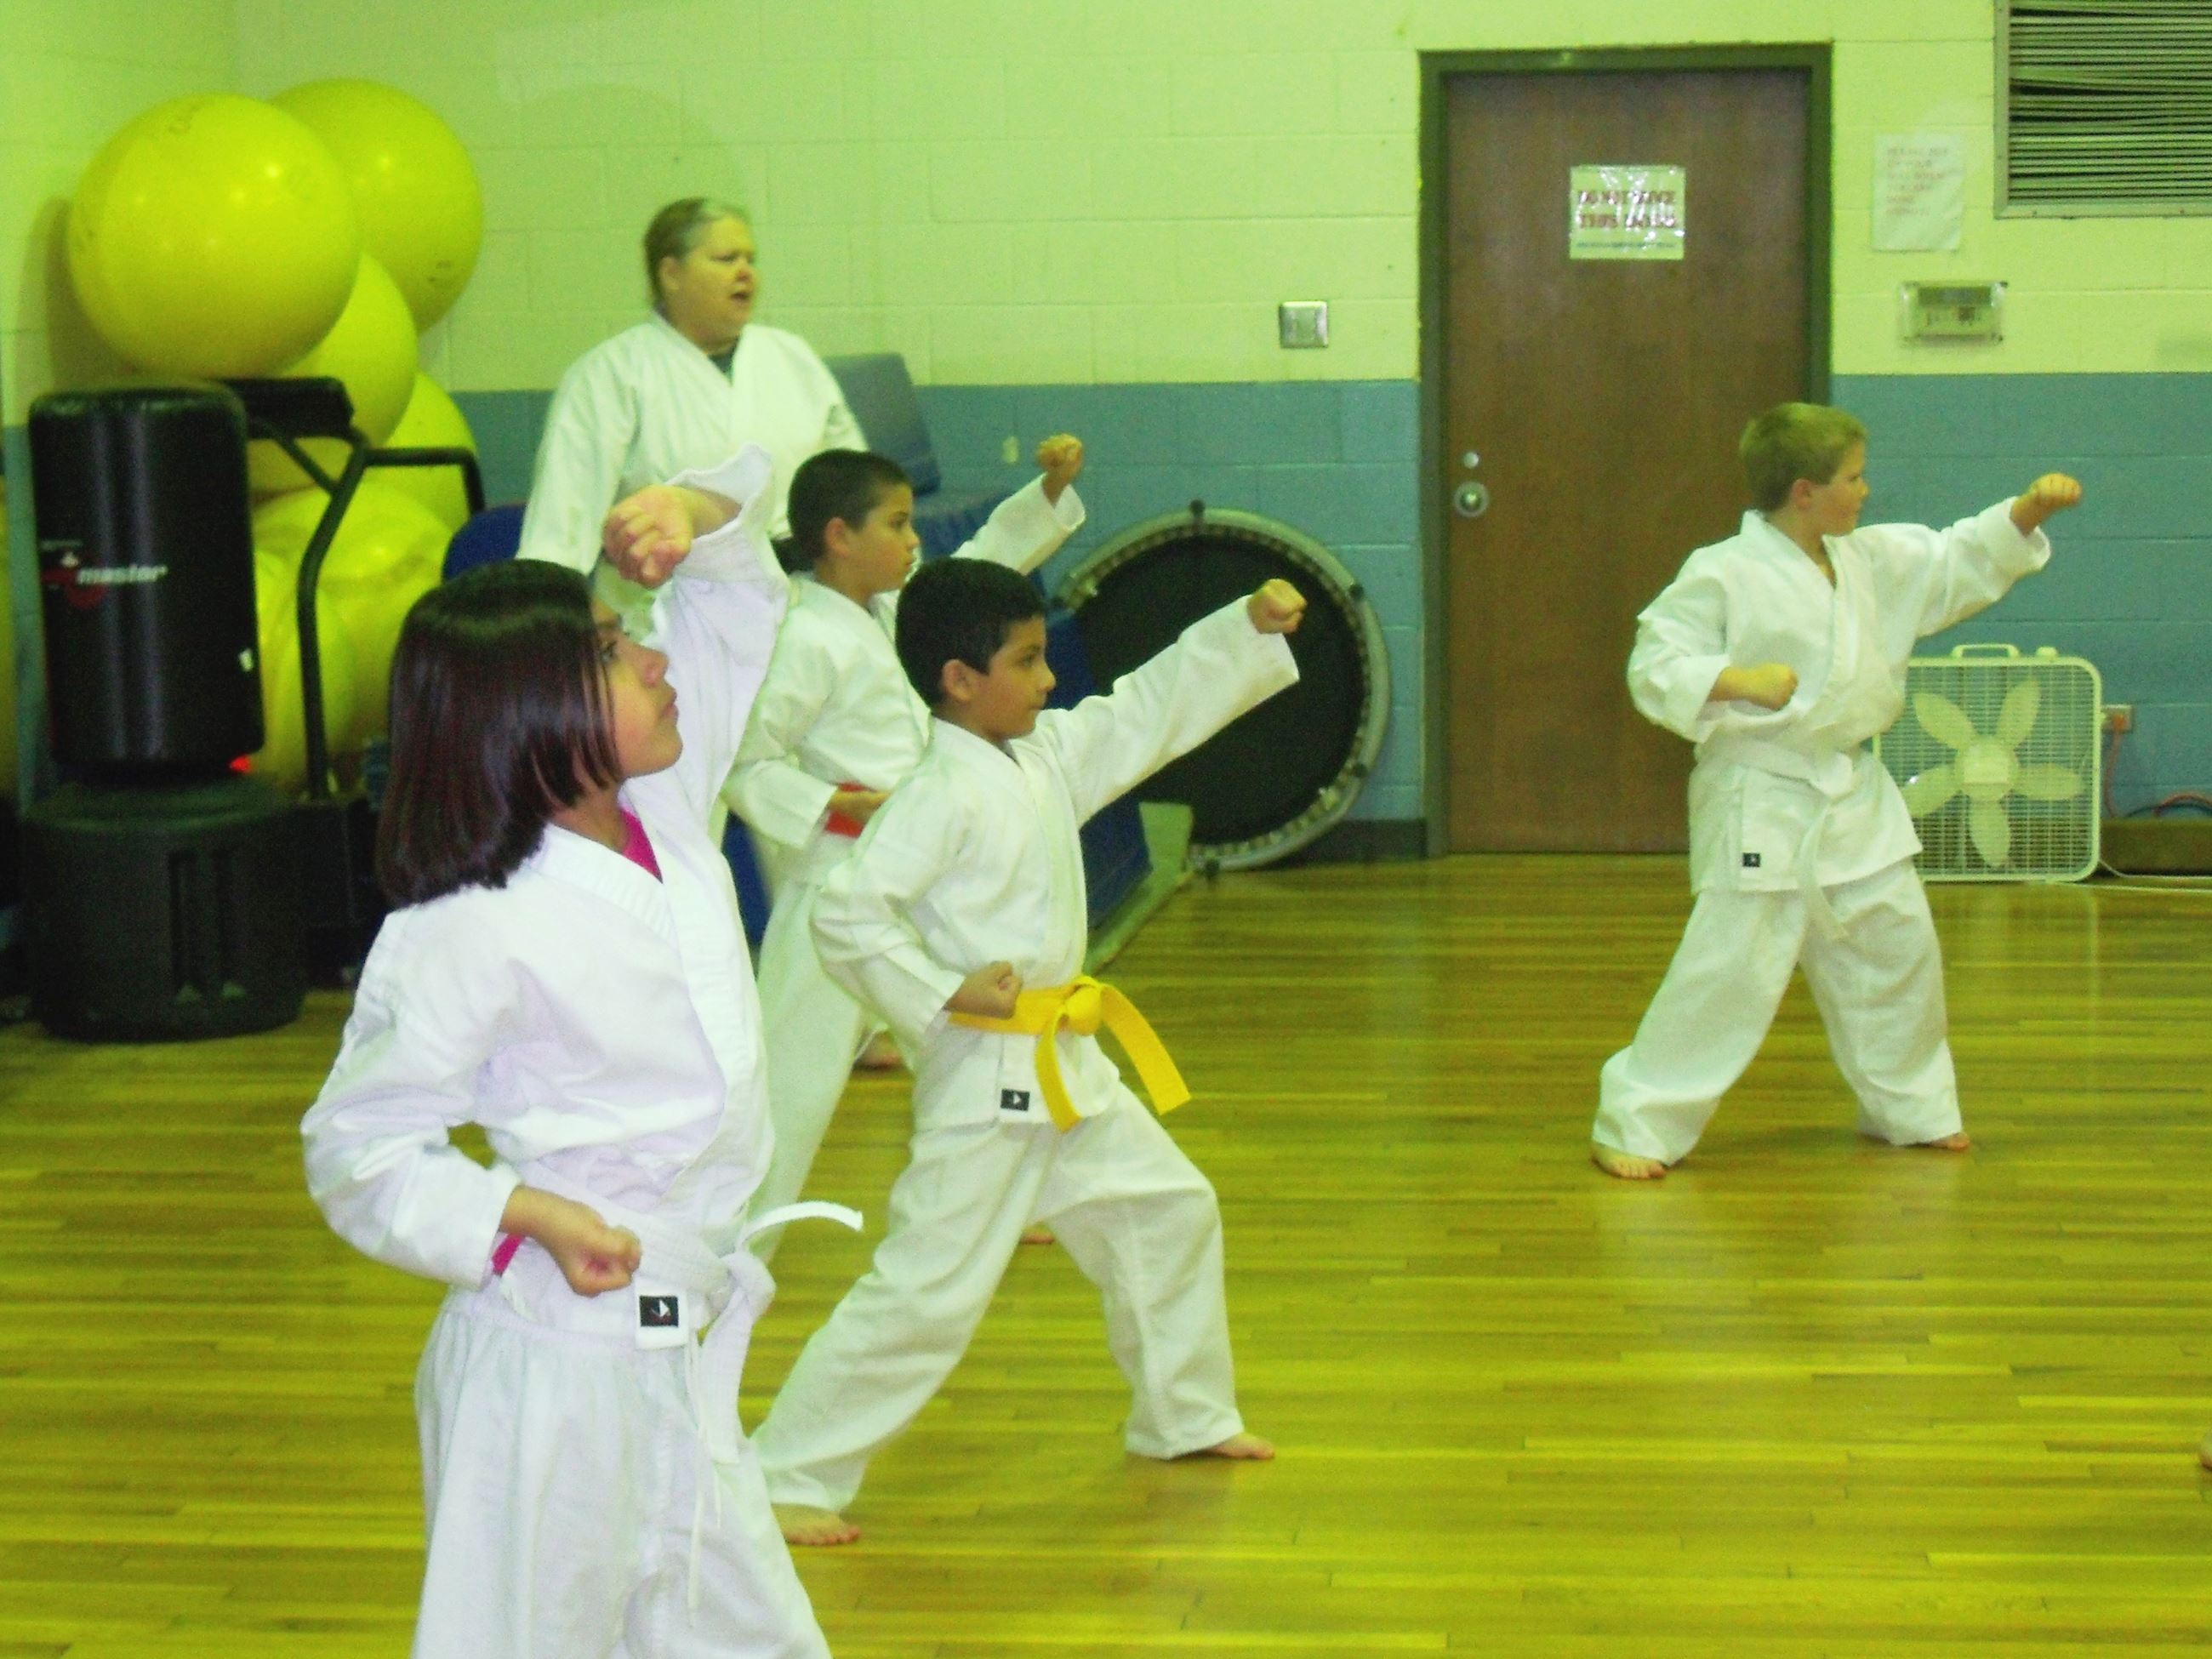 Several youth practicing karate